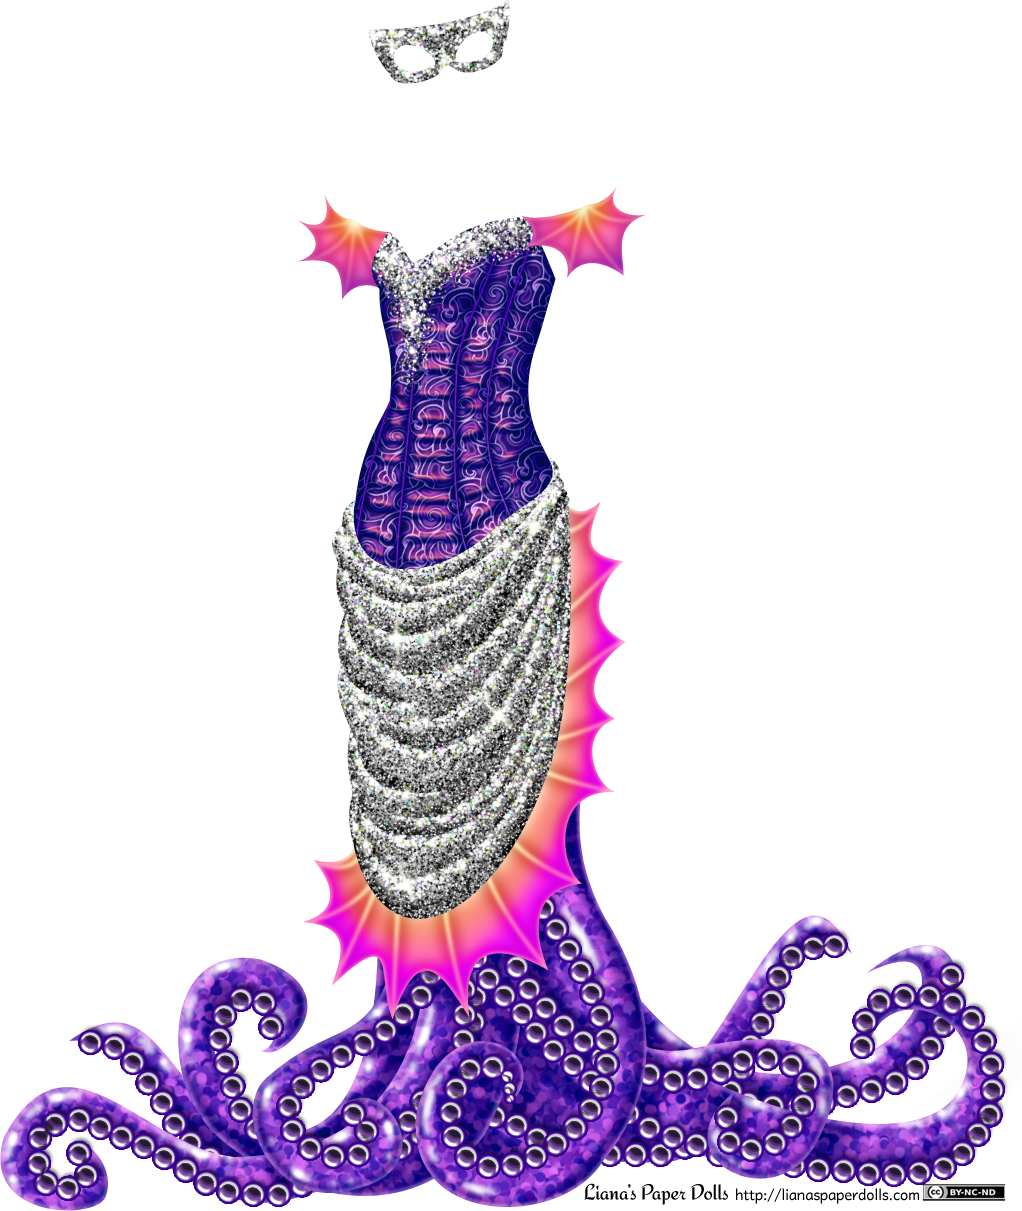 An off-the-shoulder dress with fin-like webbing on the upper arms, a corset top, a tight, sparkly silver skirt edged with more fin-like webbing and several tentacles coming from the skirt and spilling over the floor. The corset is patterned with an abstract tentacle pattern and is a deep purple. It's made of shiny fabric which is nearly pink where the light hits it, and the top of the corset is covered in sparkly silver glitter. The fin-like webbing is done in garish shades of yellow, orange and magenta. The skirt is gathered at the back and drapes over the front from the waist to the knees in graceful folds, and the entire skirt is covered in silver sequins that glitter as they catch the light. The silhouette suggests a late 1800s gown, although the colors, glitter and tentacles don't. There are about ten tentacles, shiny and colored in shades of purple, with large suckers on them. They fall towards the ground, where they spill out and curl around on the floor. There's also a shiny silver mask to go with the outfit.